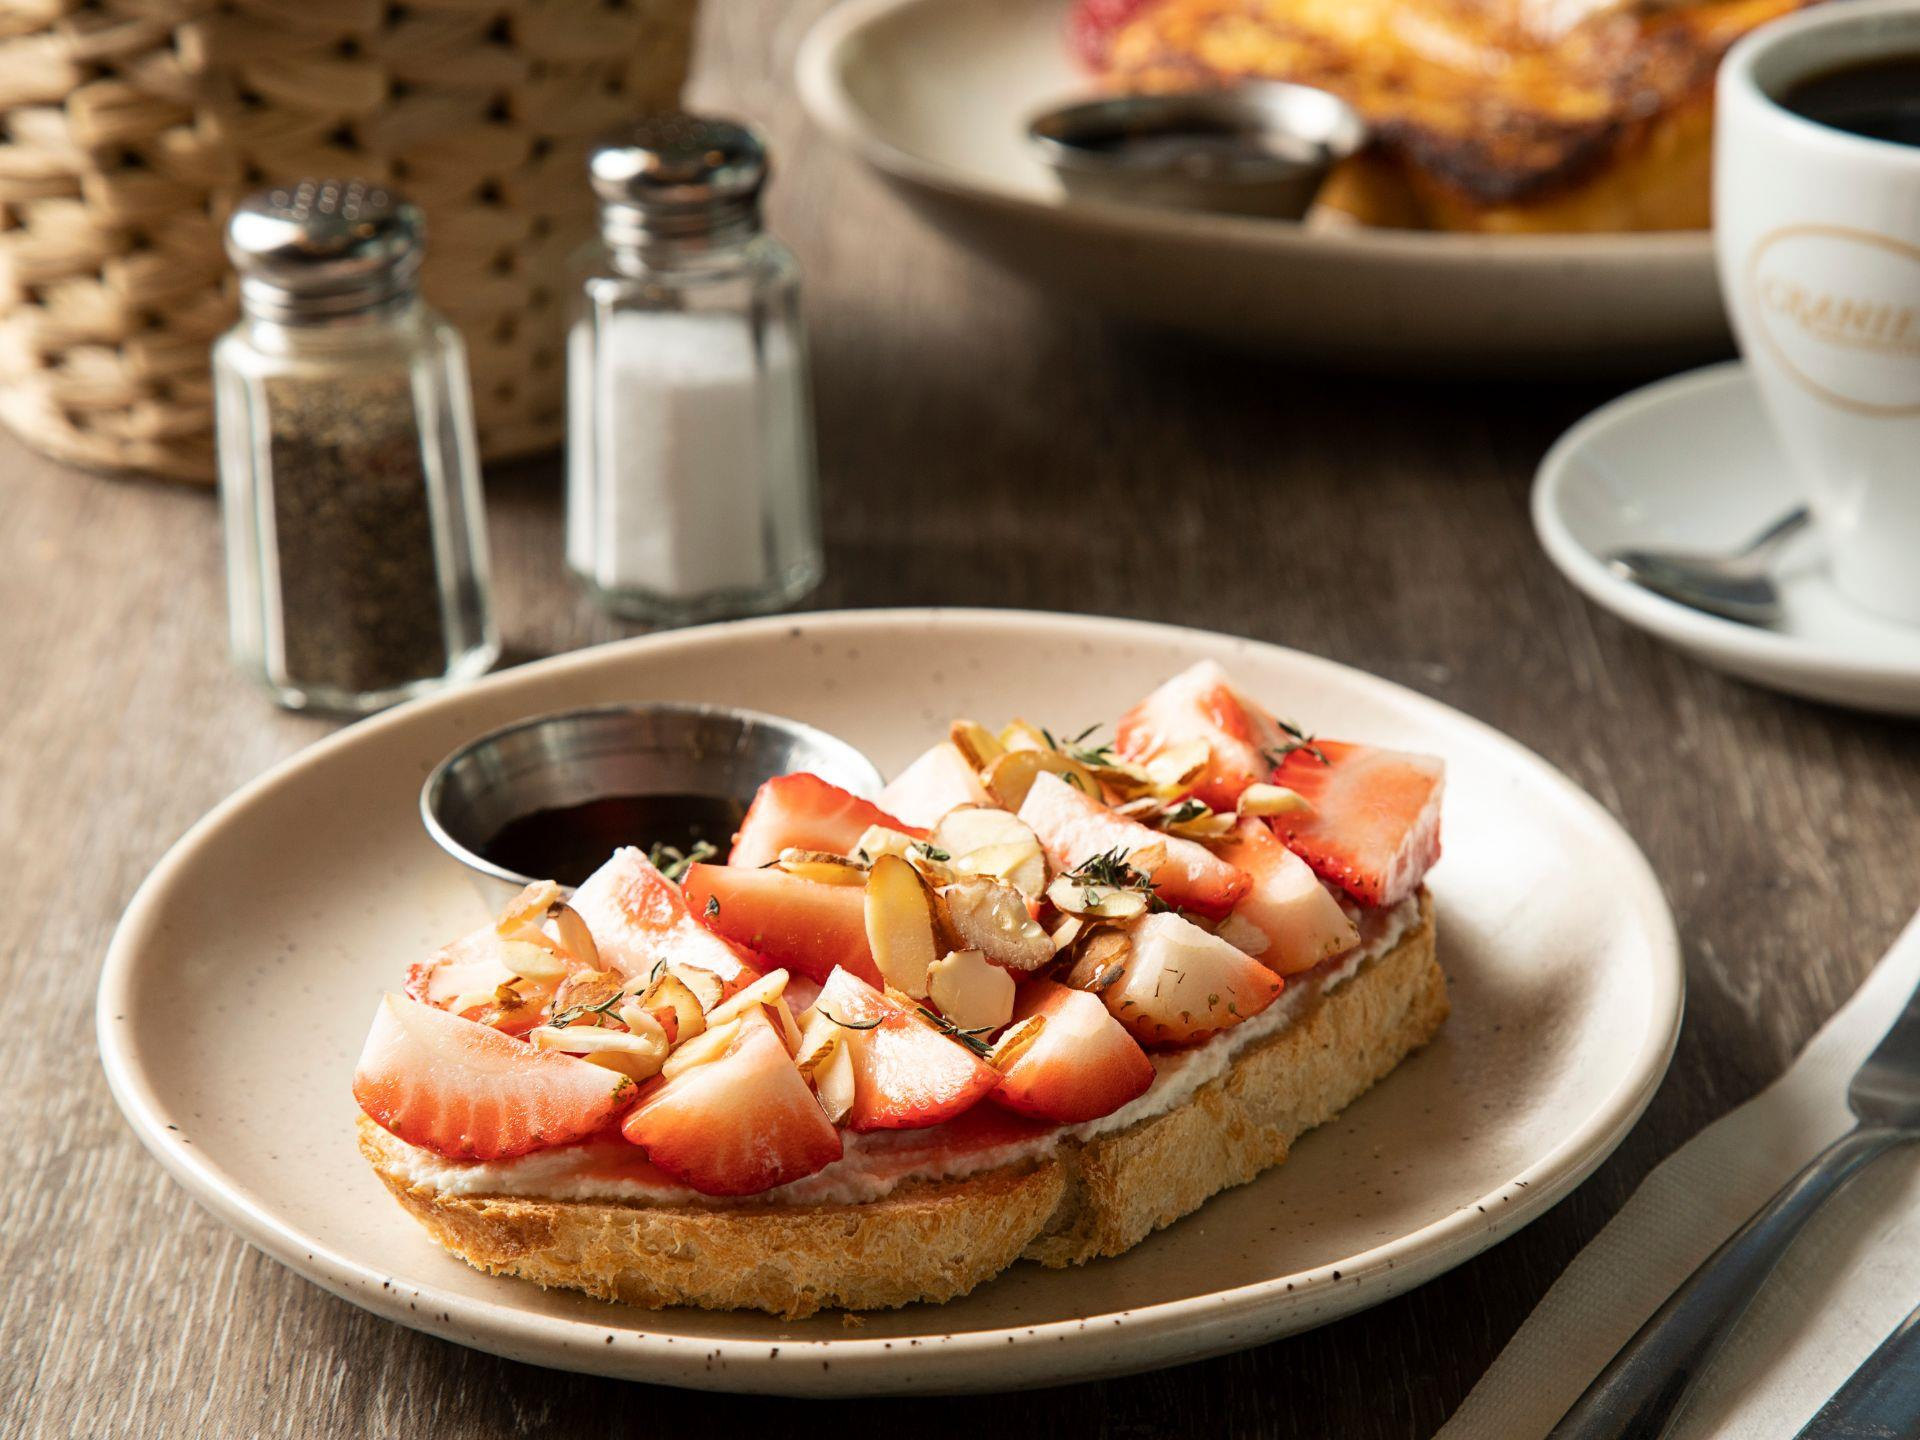 French toast with strawberries and assorted nuts with maple syrup